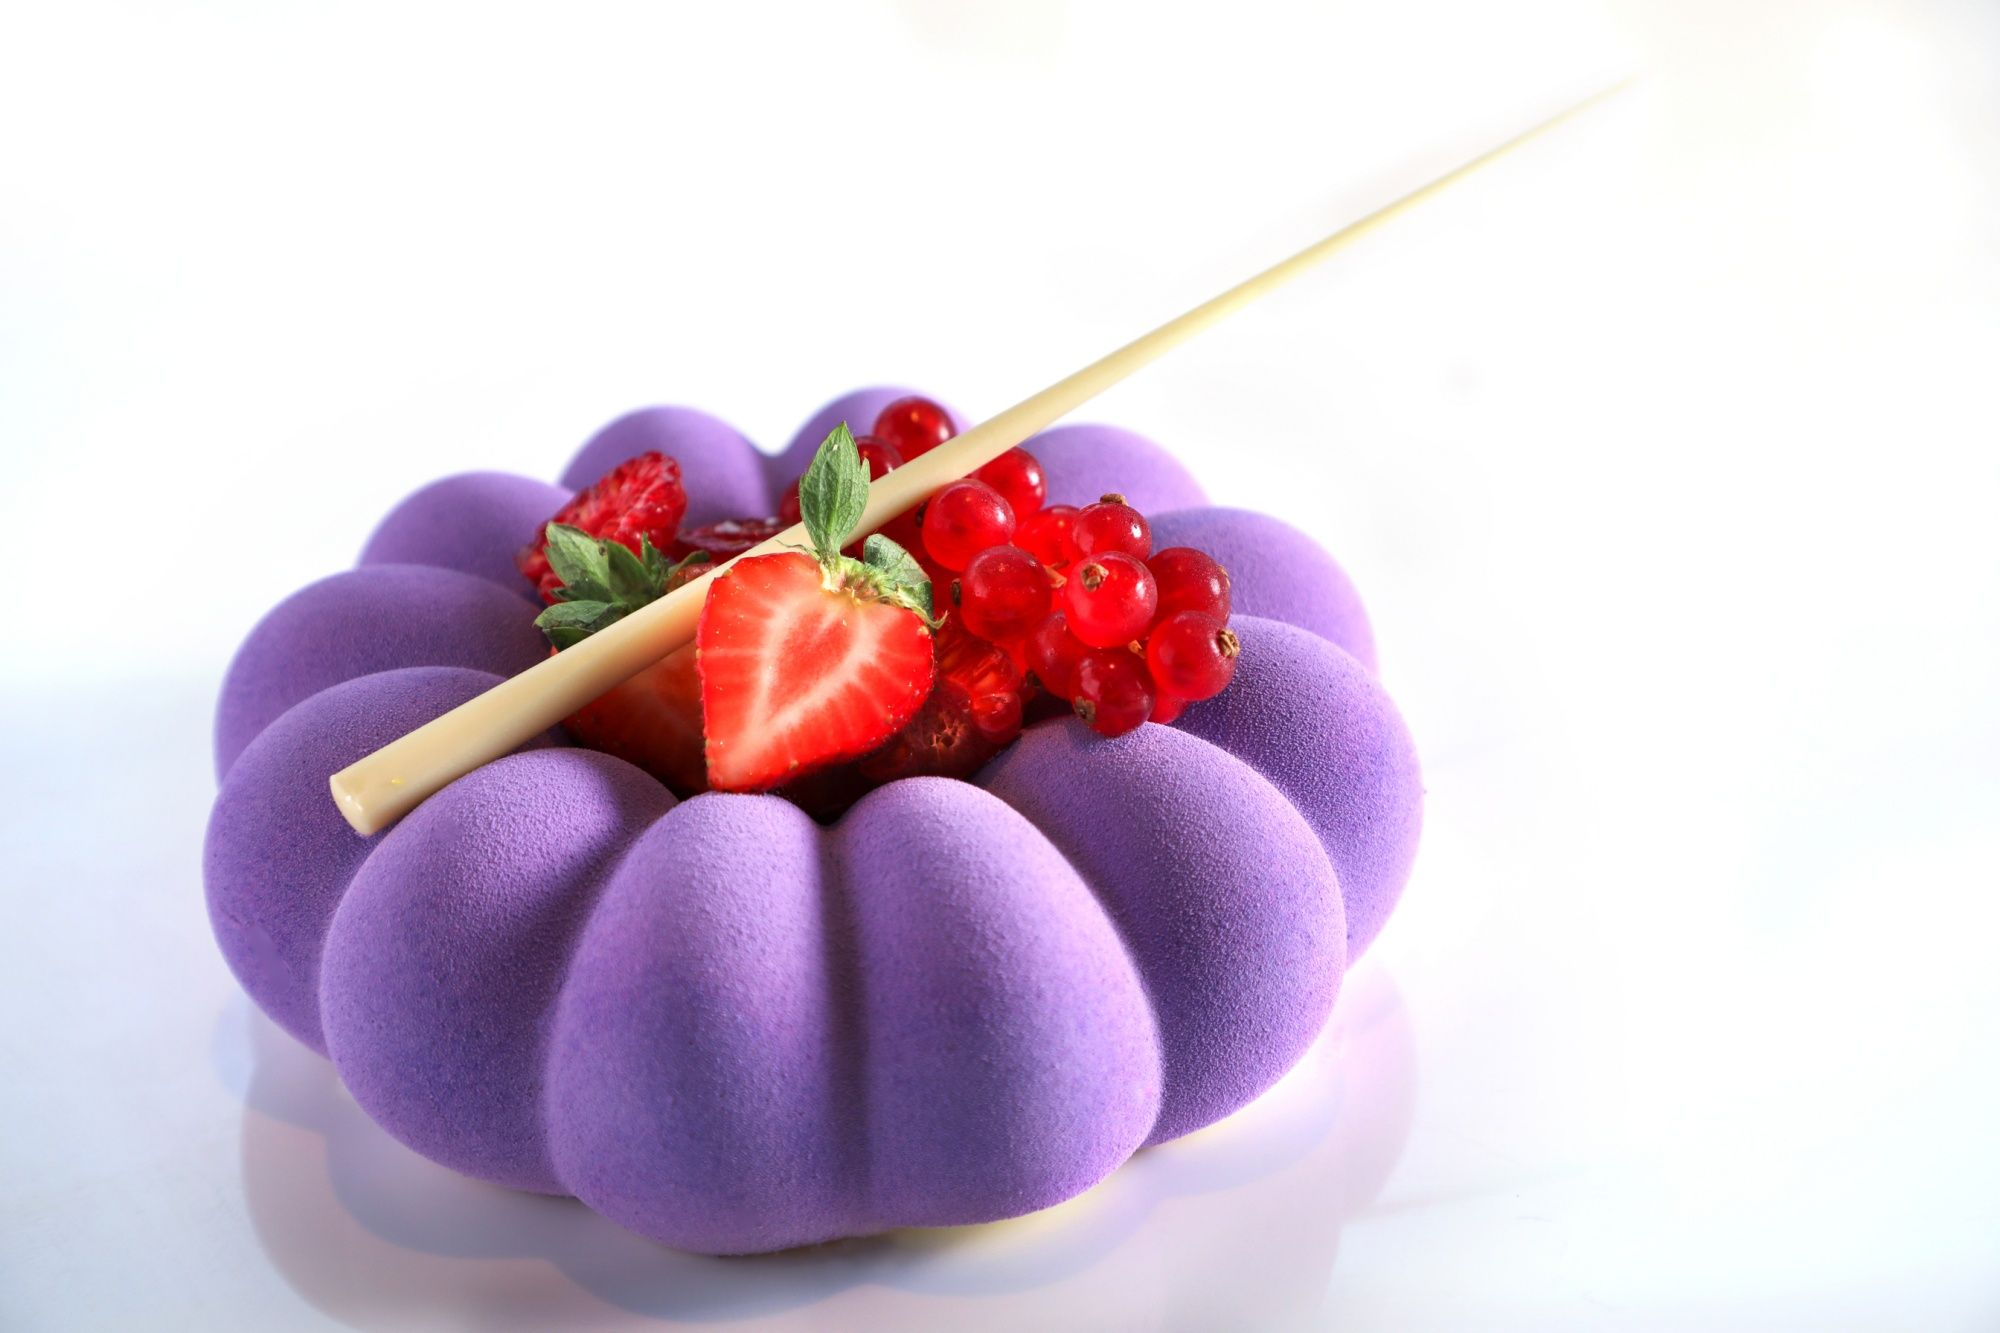 Hyatt Regency Sha Tin Launches Exquisite Berry Selection Cakes At Patisserie